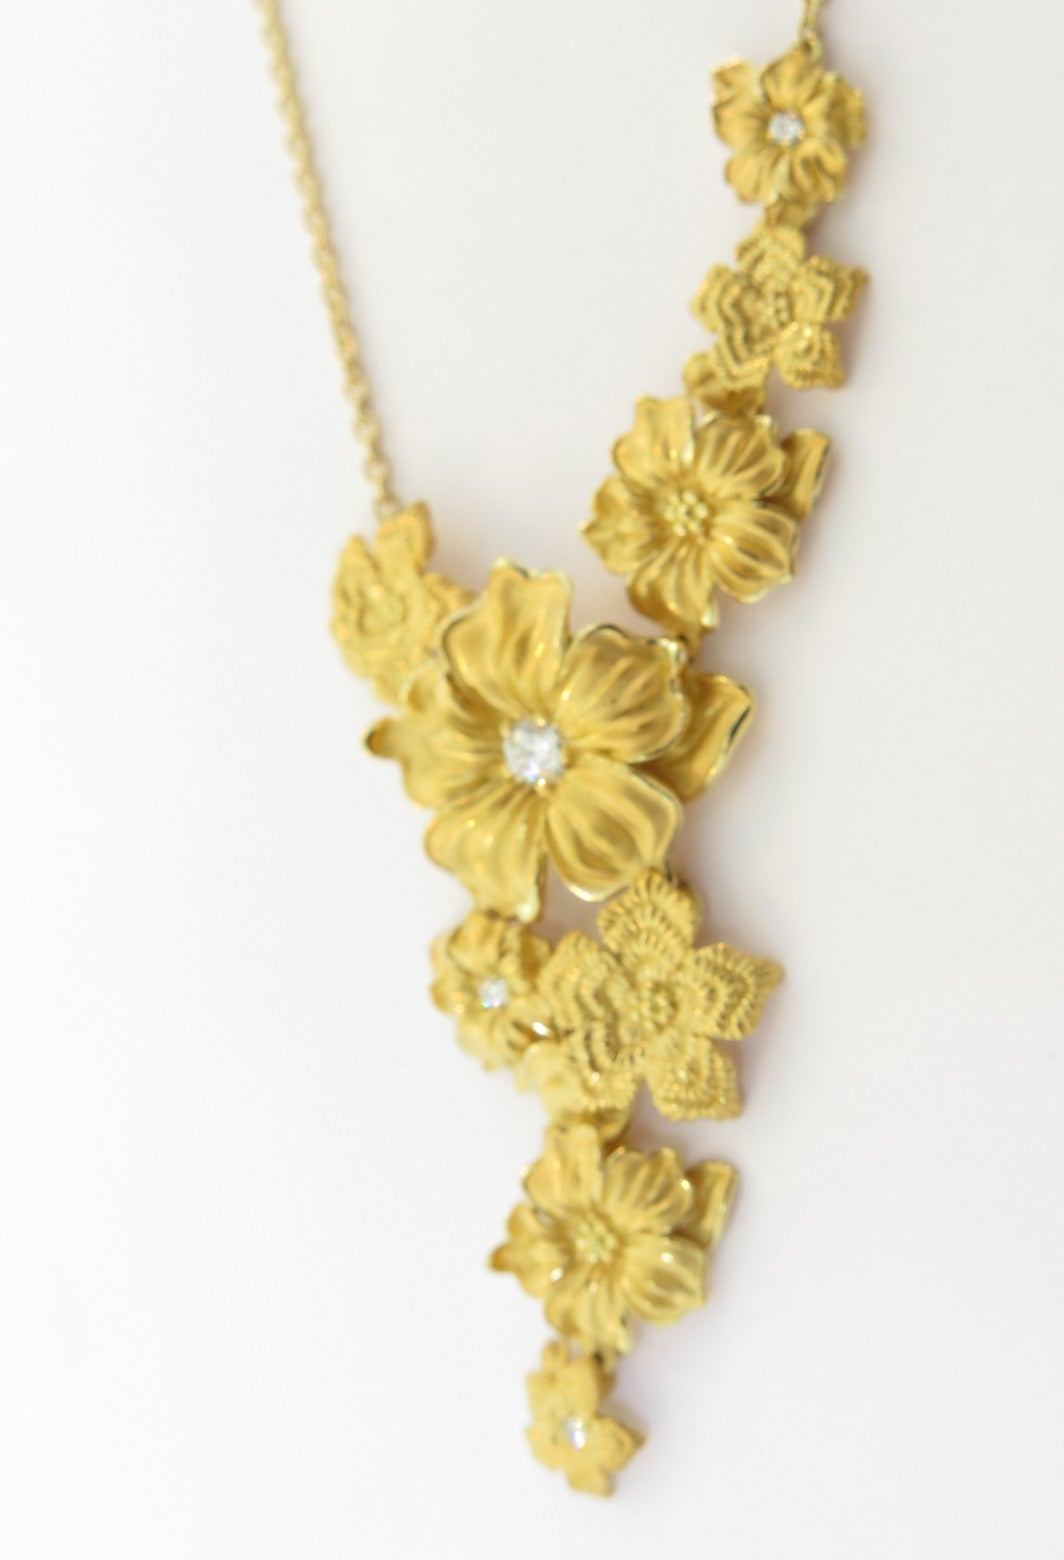 The floral motifs hand-embroidered on Manila shawls have inspired this necklace. Astonishing volumes, bold asymmetries, a mix of yellow gold and white diamonds comprise an innovative and daring vision of the floral theme.